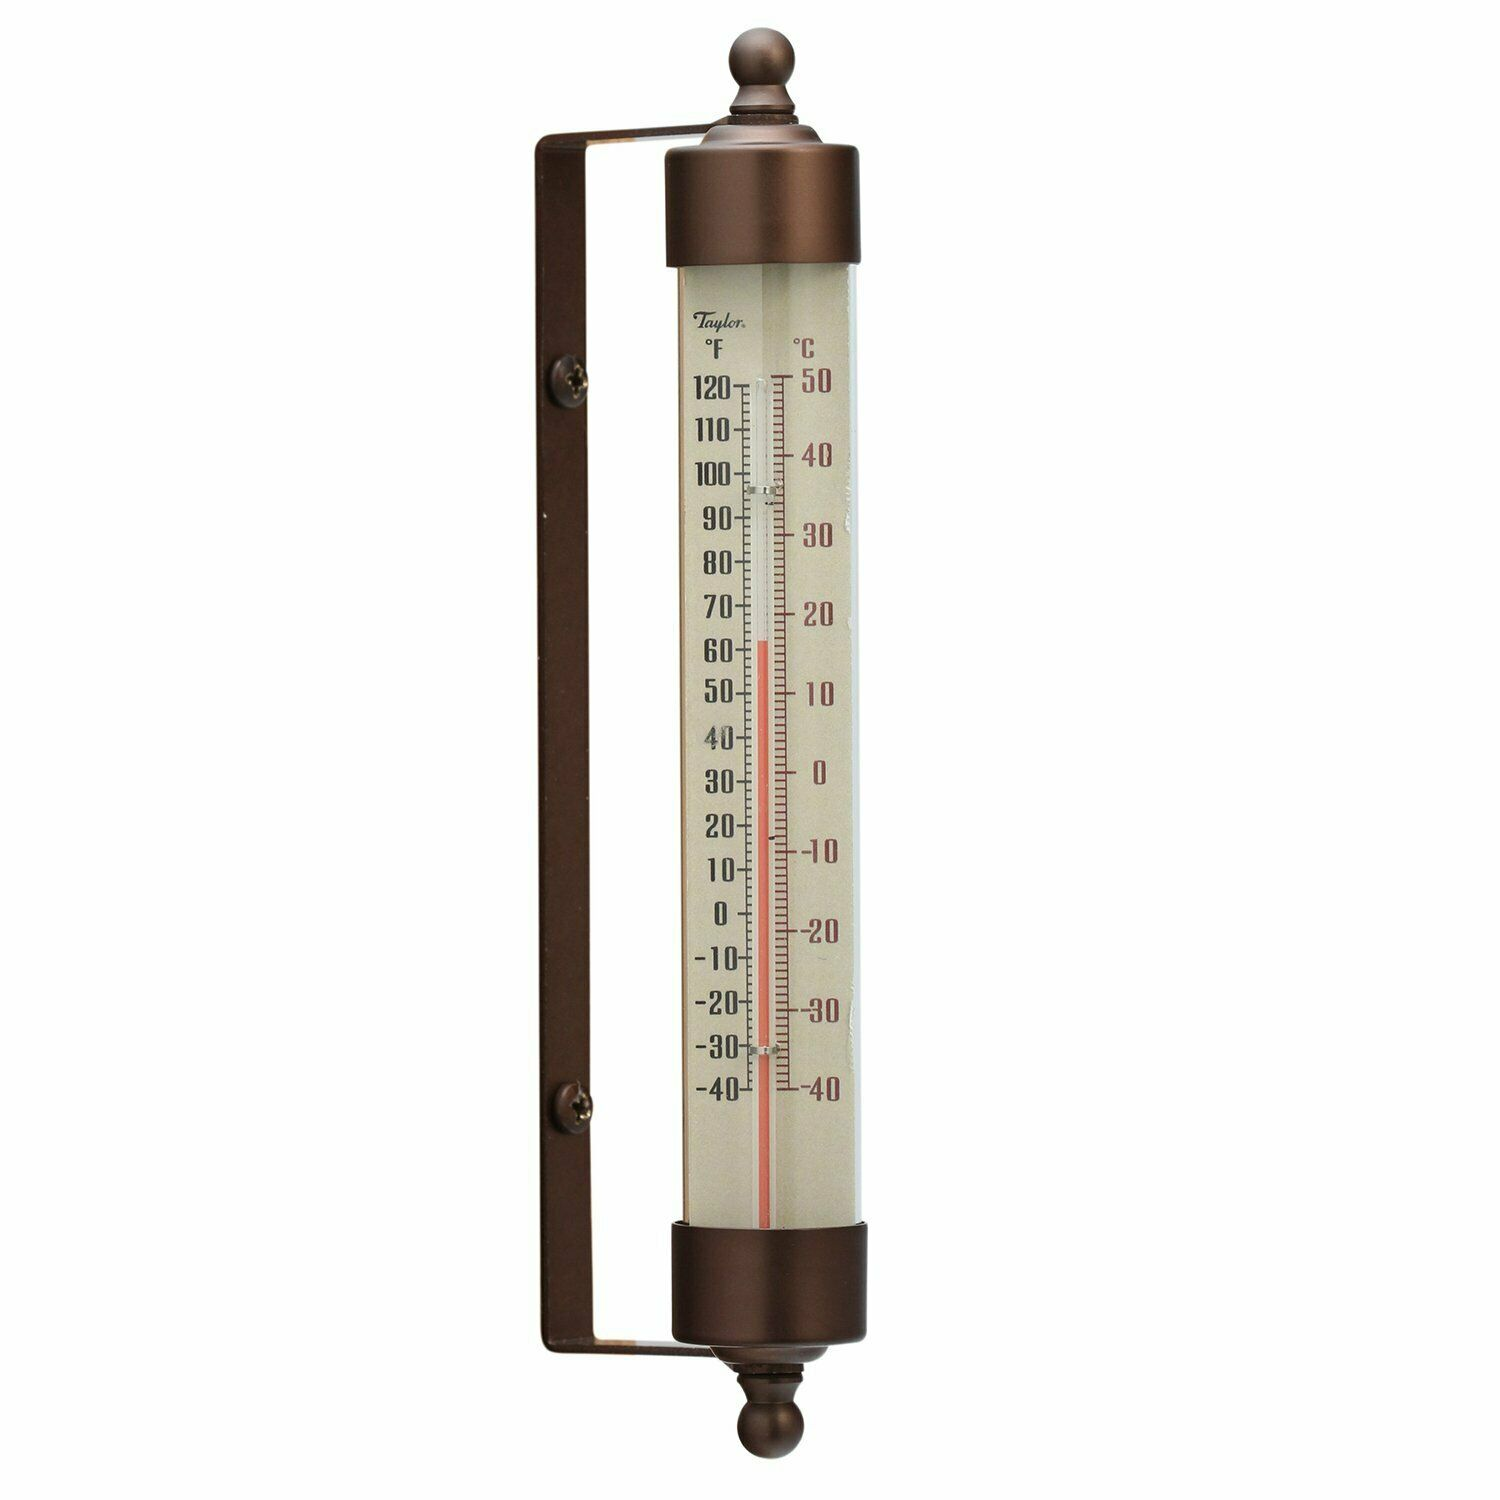 Taylor Precious Spirit-Filled Metal Vintage Outdoor Thermometer 7.5